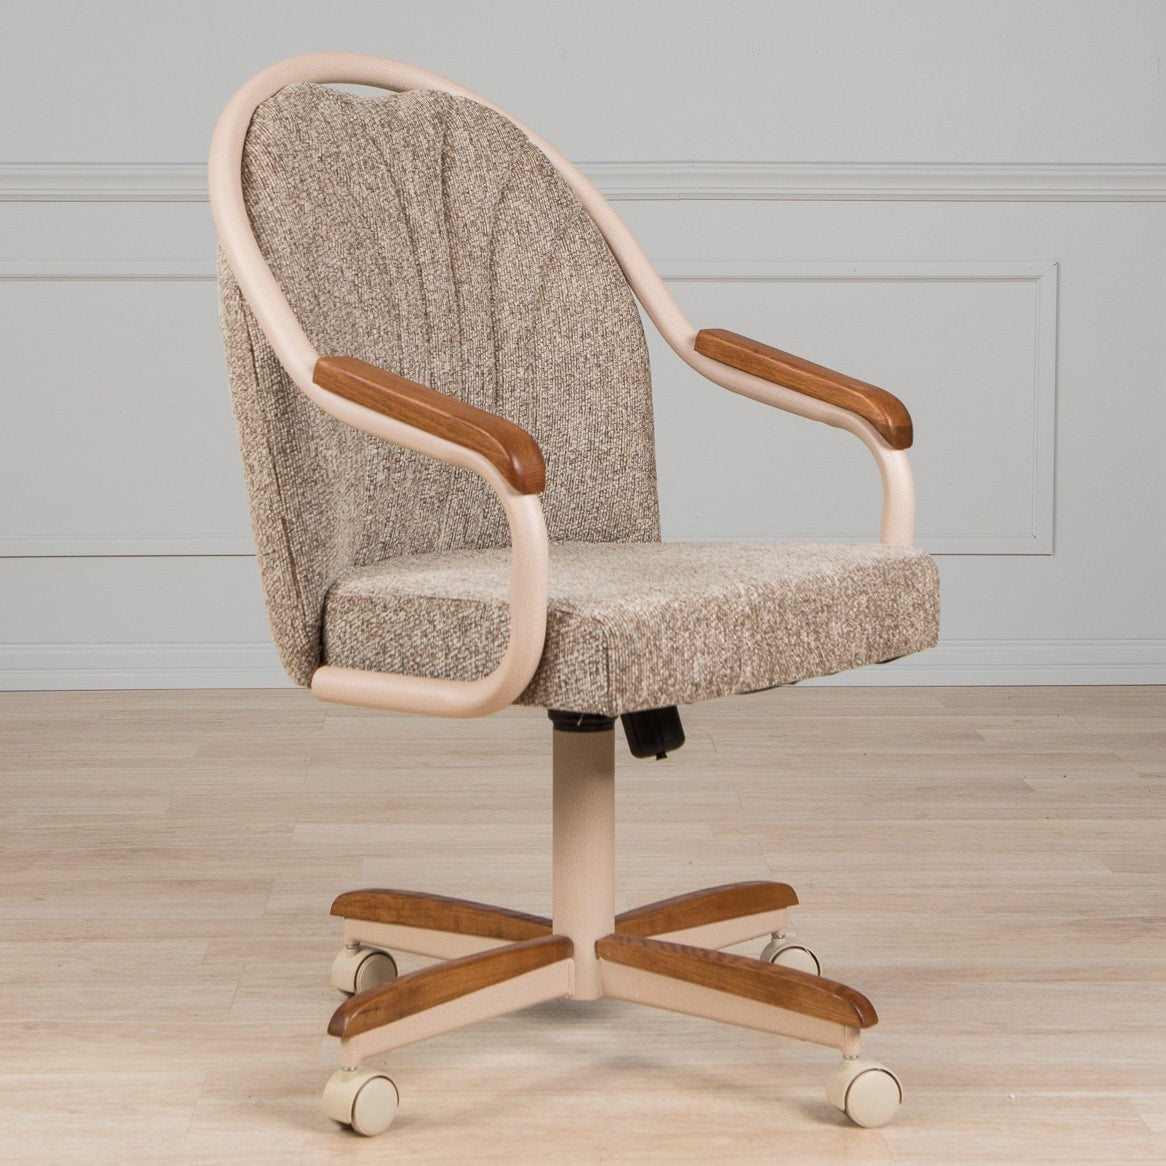 Swivel-and-Tilt Rolling-caster Chair